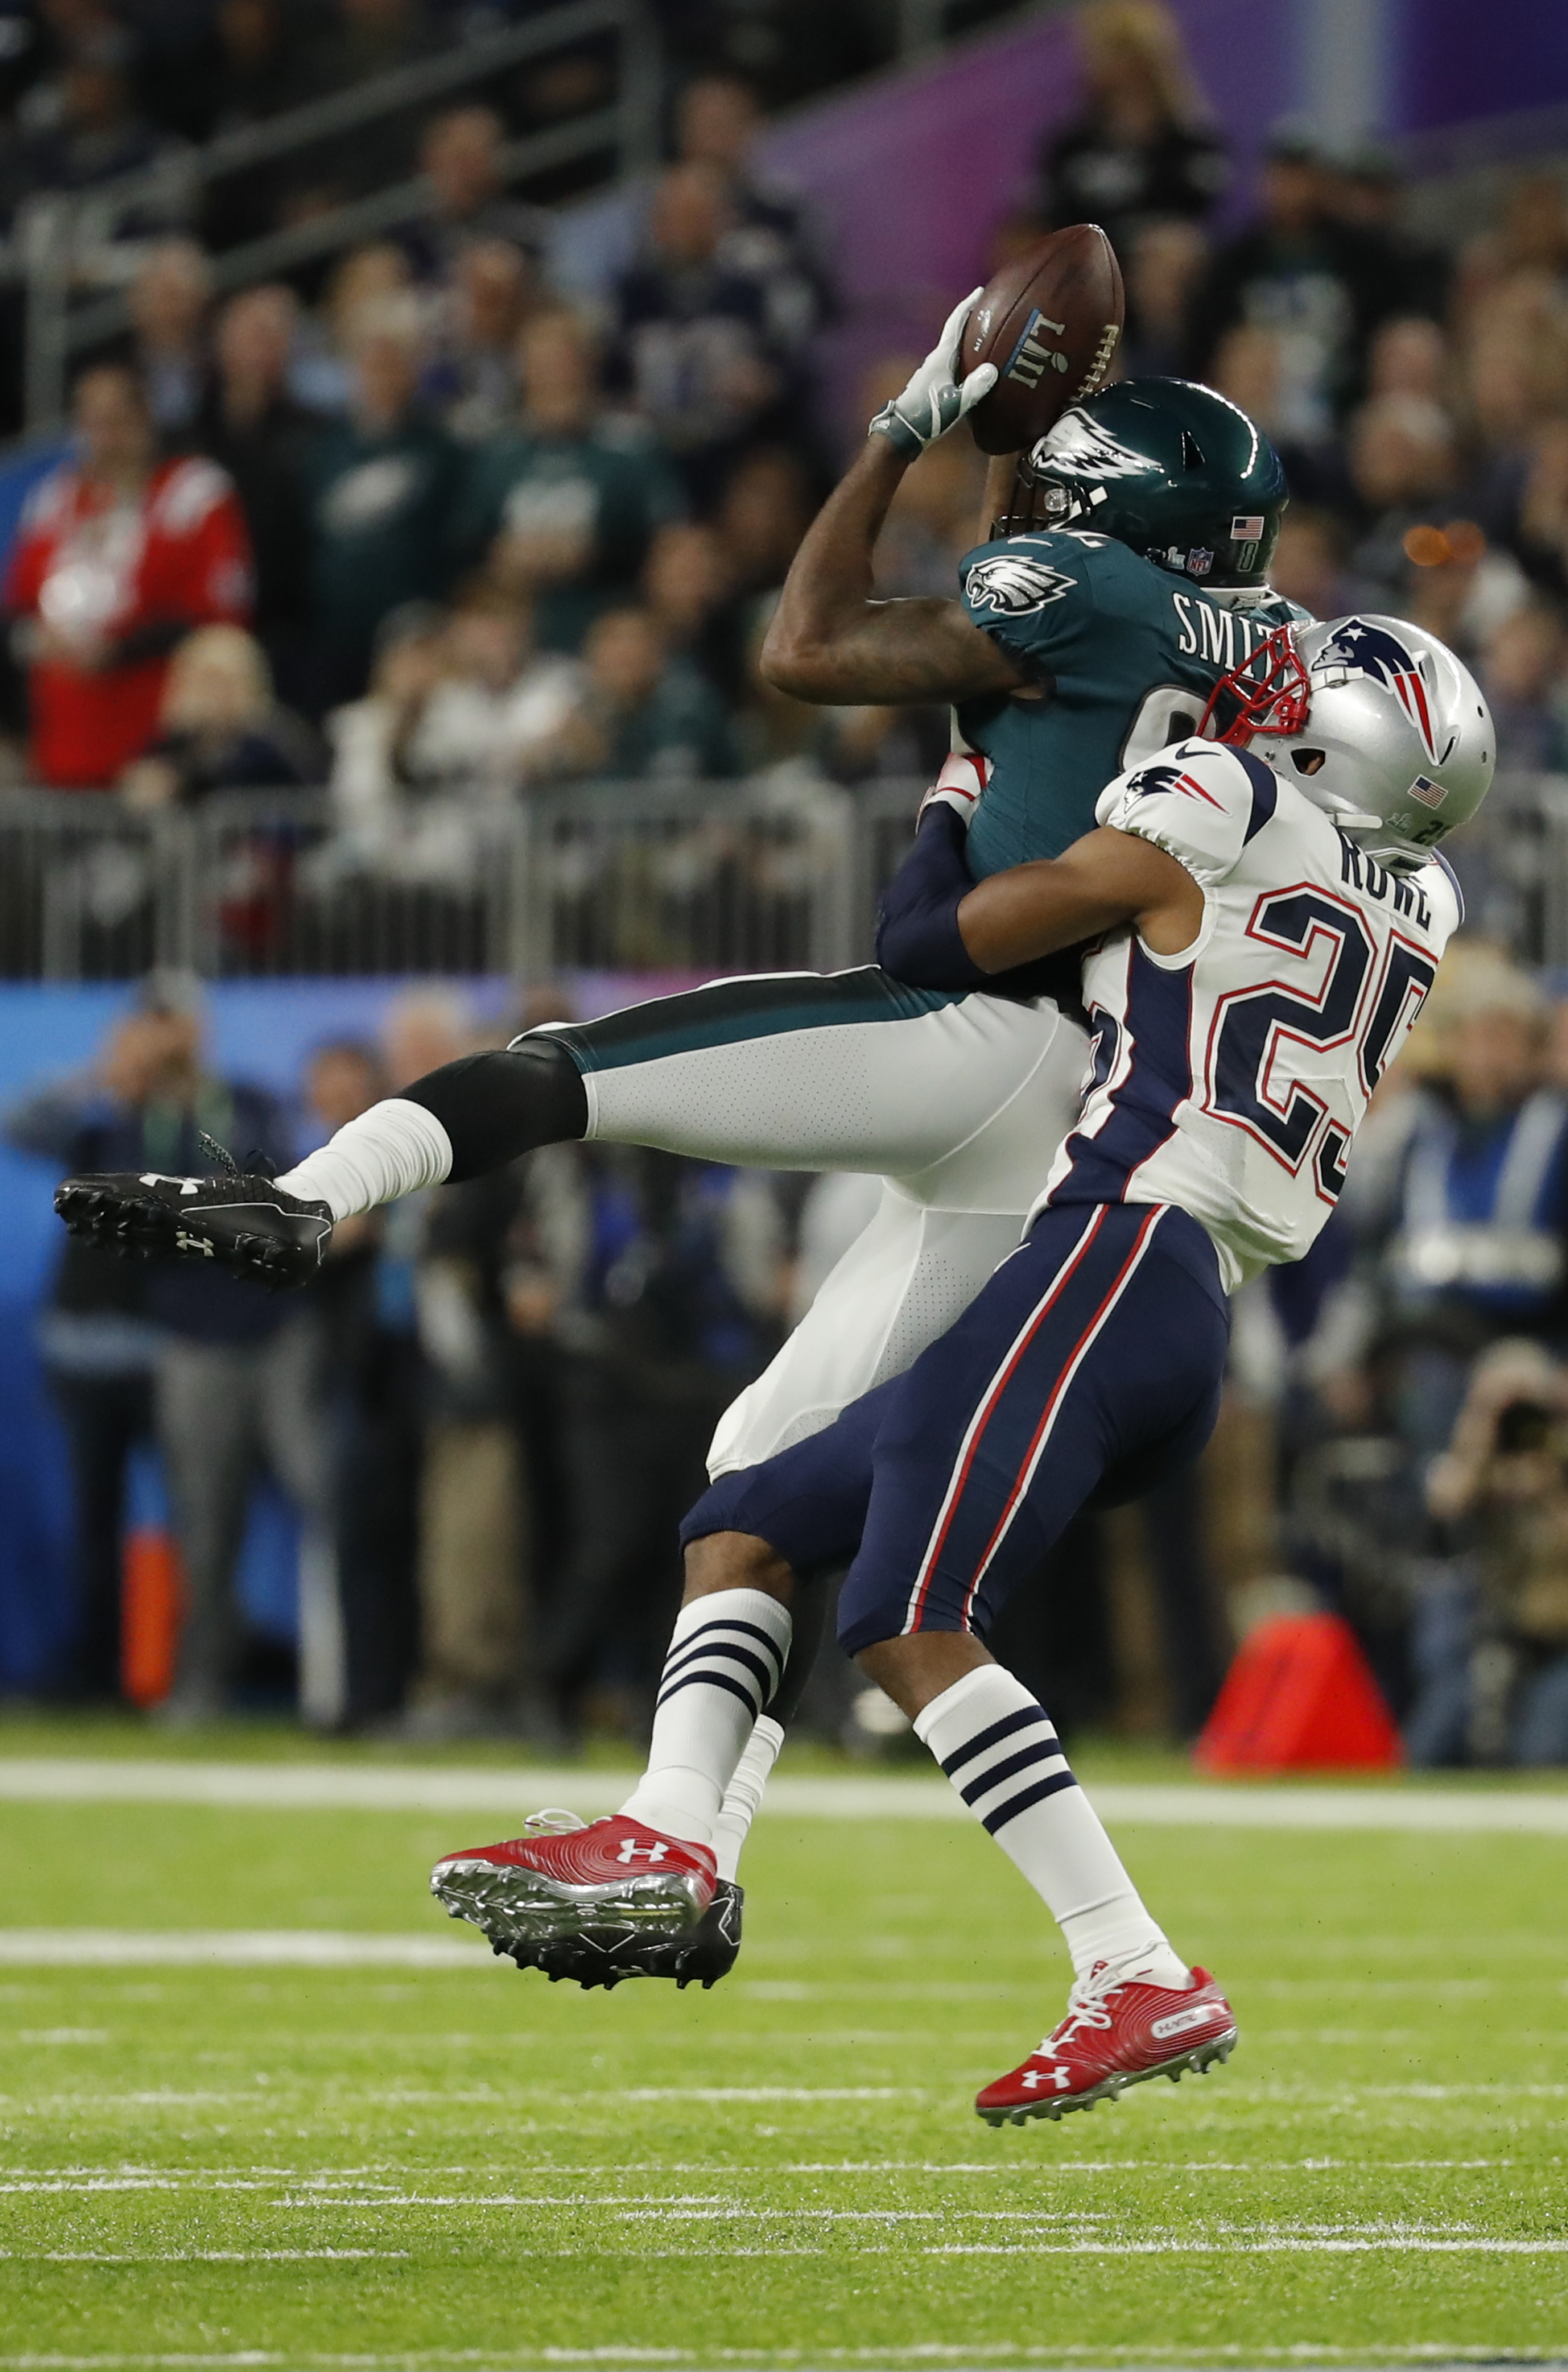 "<div class=""meta image-caption""><div class=""origin-logo origin-image ap""><span>AP</span></div><span class=""caption-text"">Philadelphia Eagles wide receiver Torrey Smith (82,) makes a catch against New England Patriots cornerback Eric Rowe (25), during the first half. (AP Photo/Chris O'Meara)</span></div>"